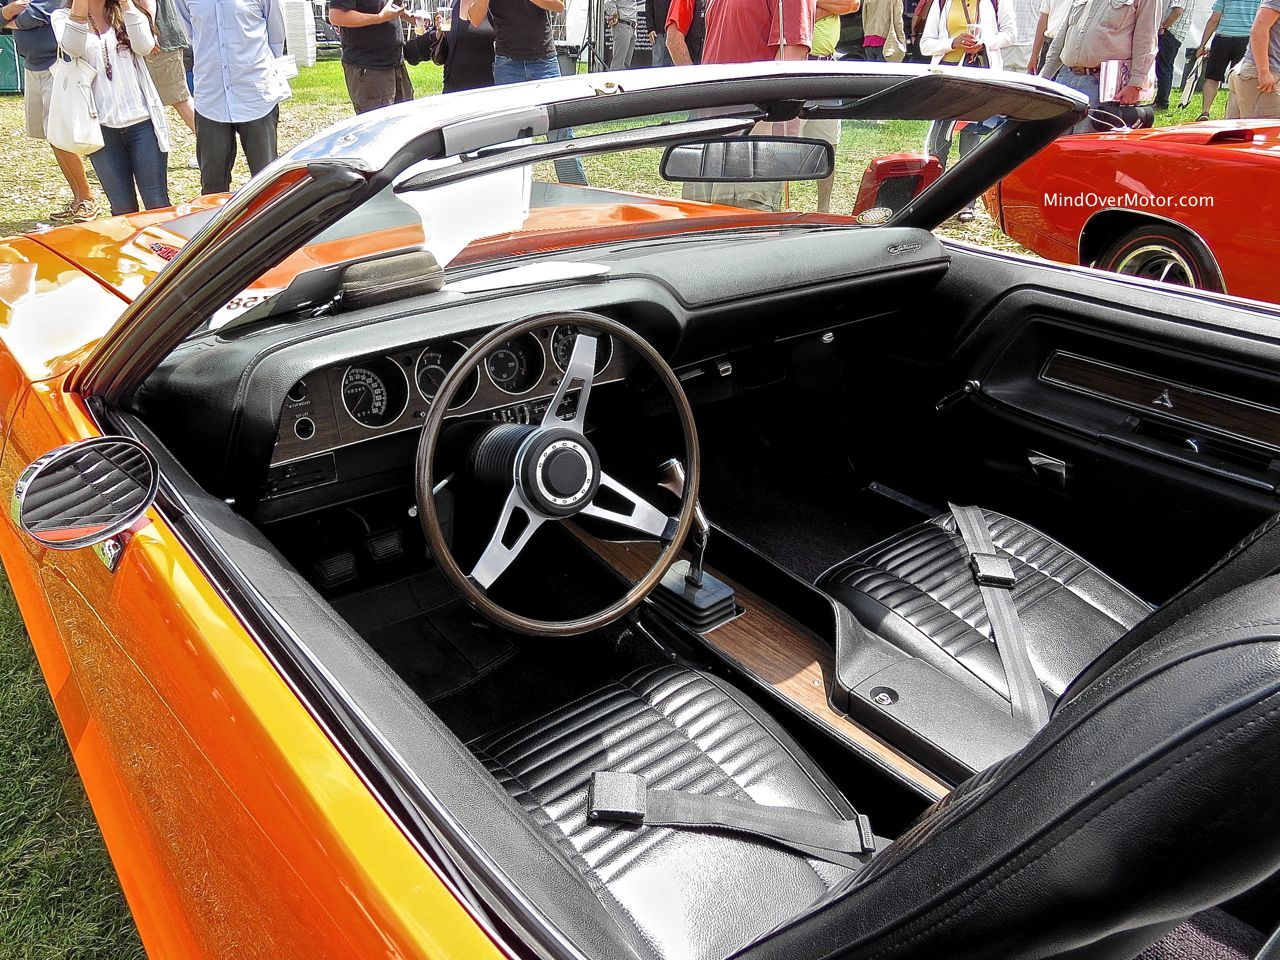 1970 Dodge Challenger R:T Convertible Interior